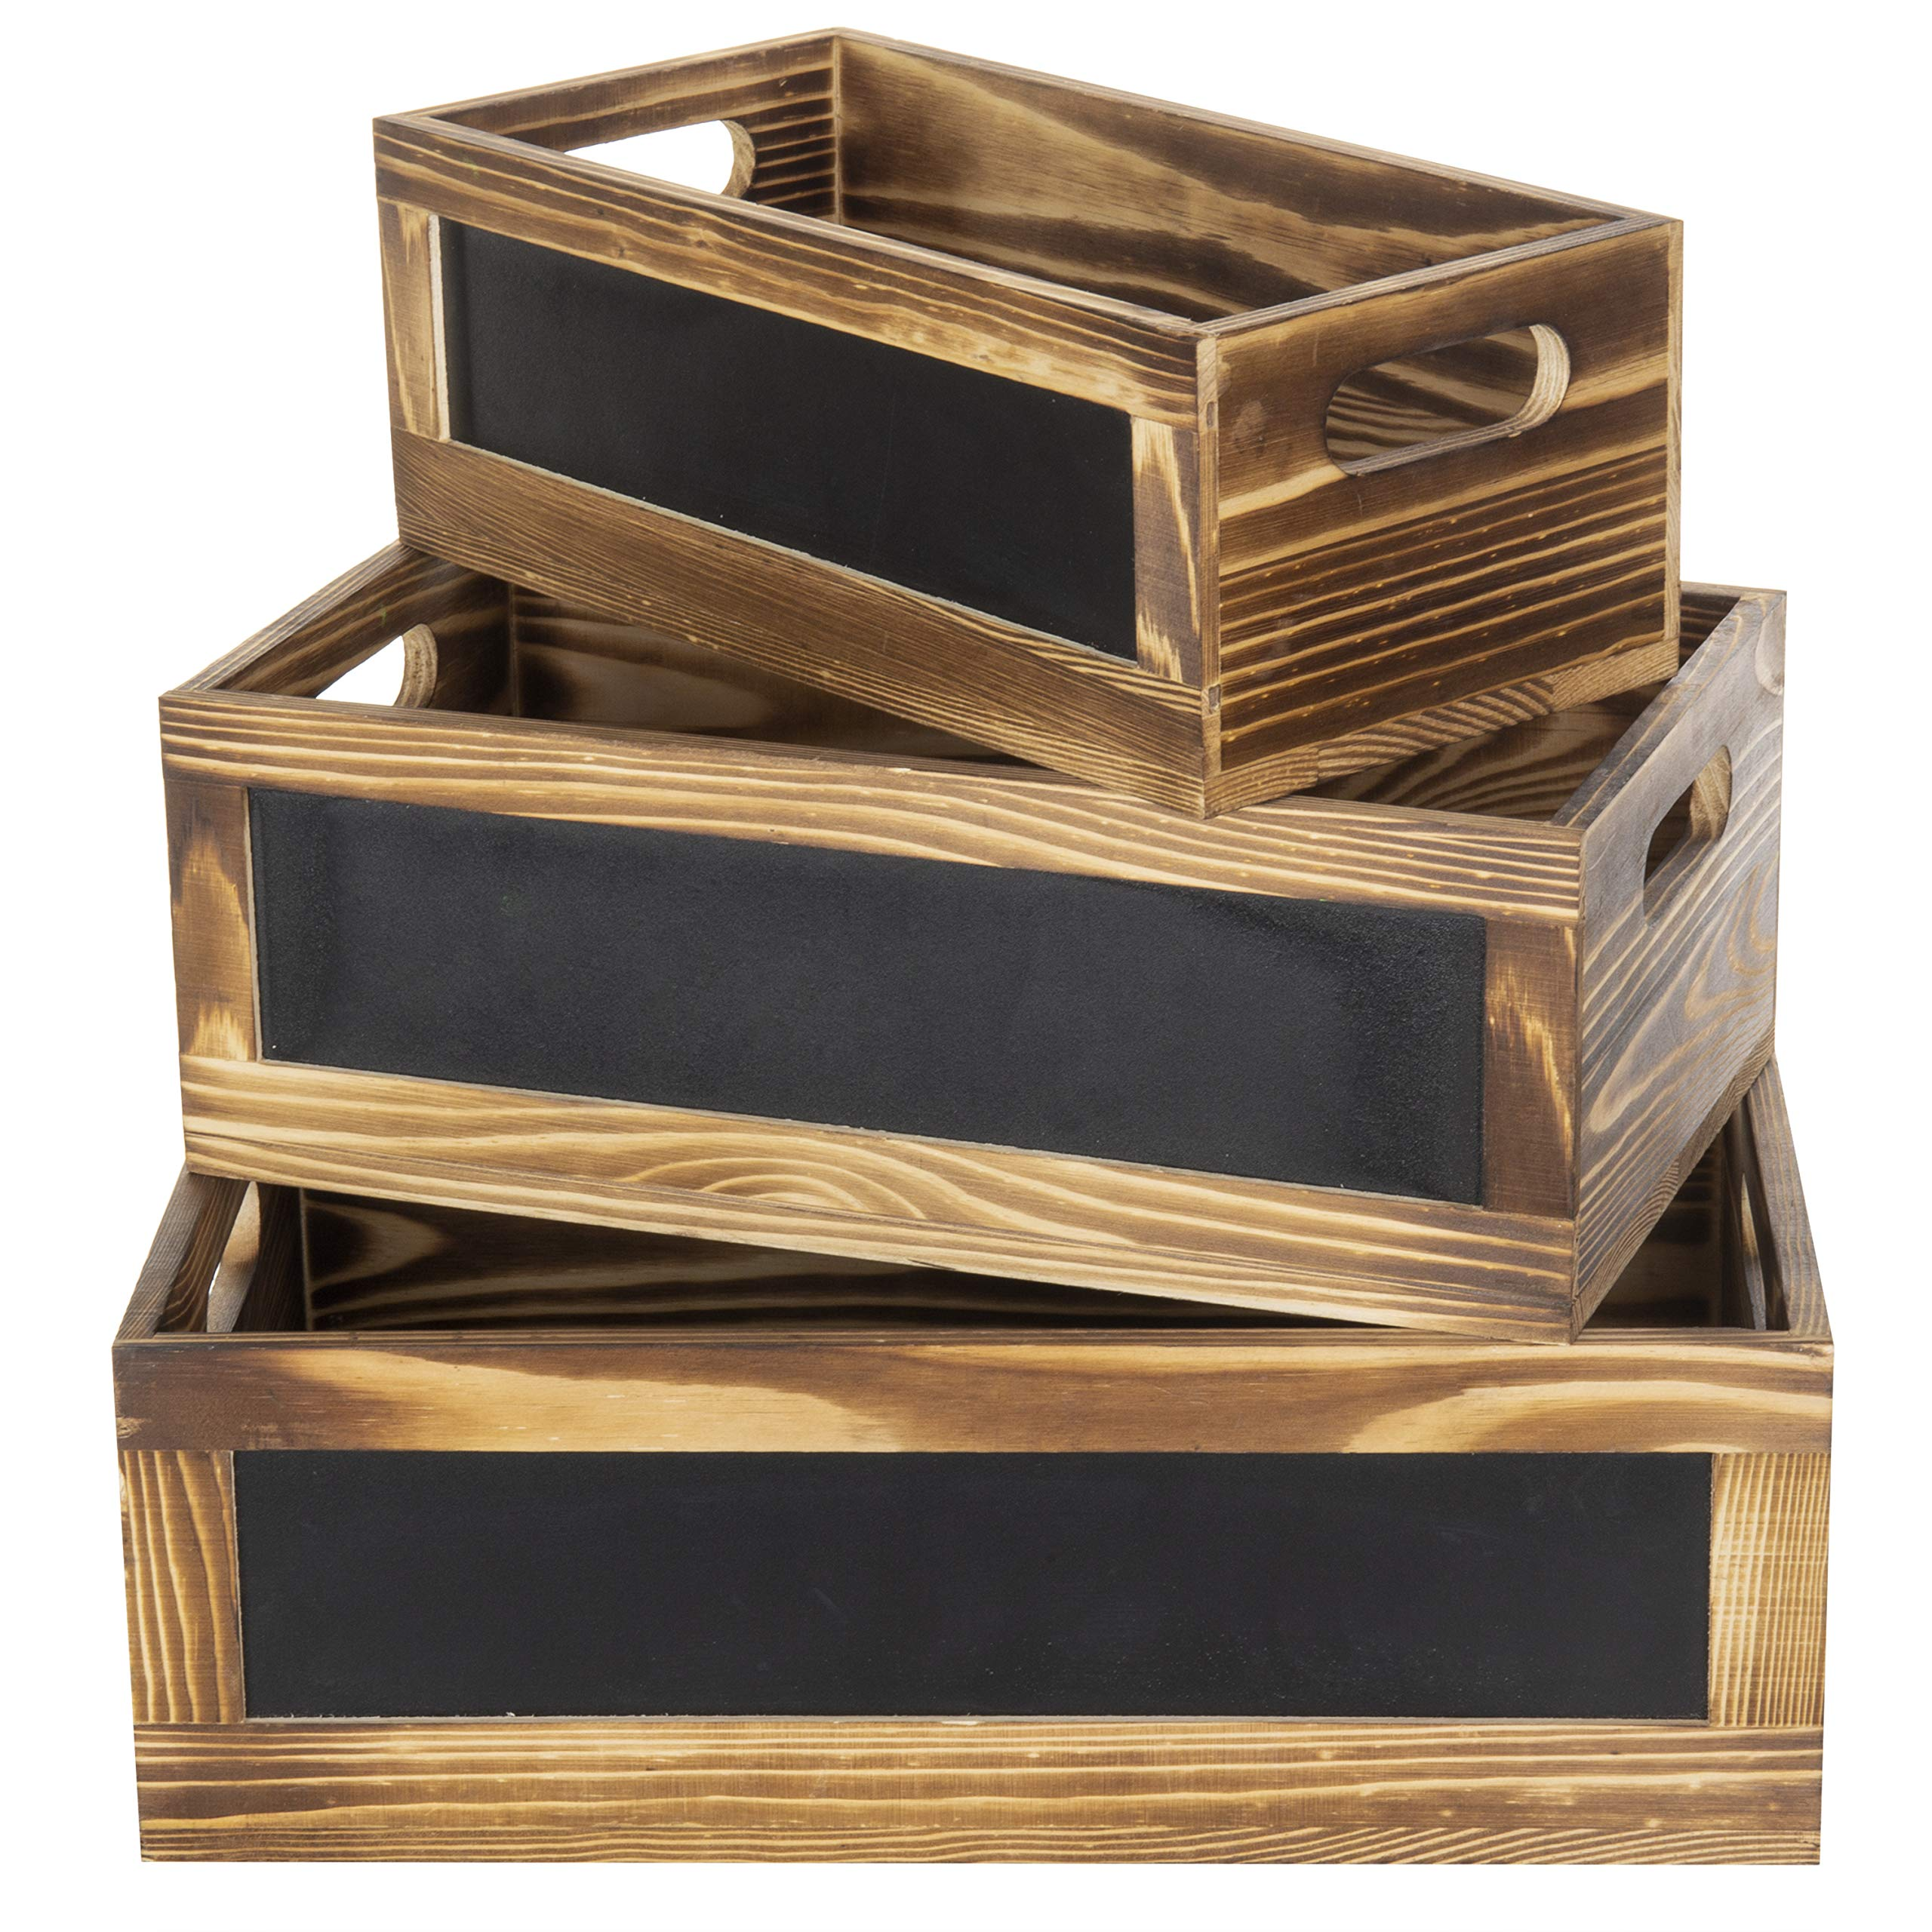 MyGift Rustic Burnt Wood Nesting Storage Crates with Chalkboard Front Panels, Set of 3 by MyGift